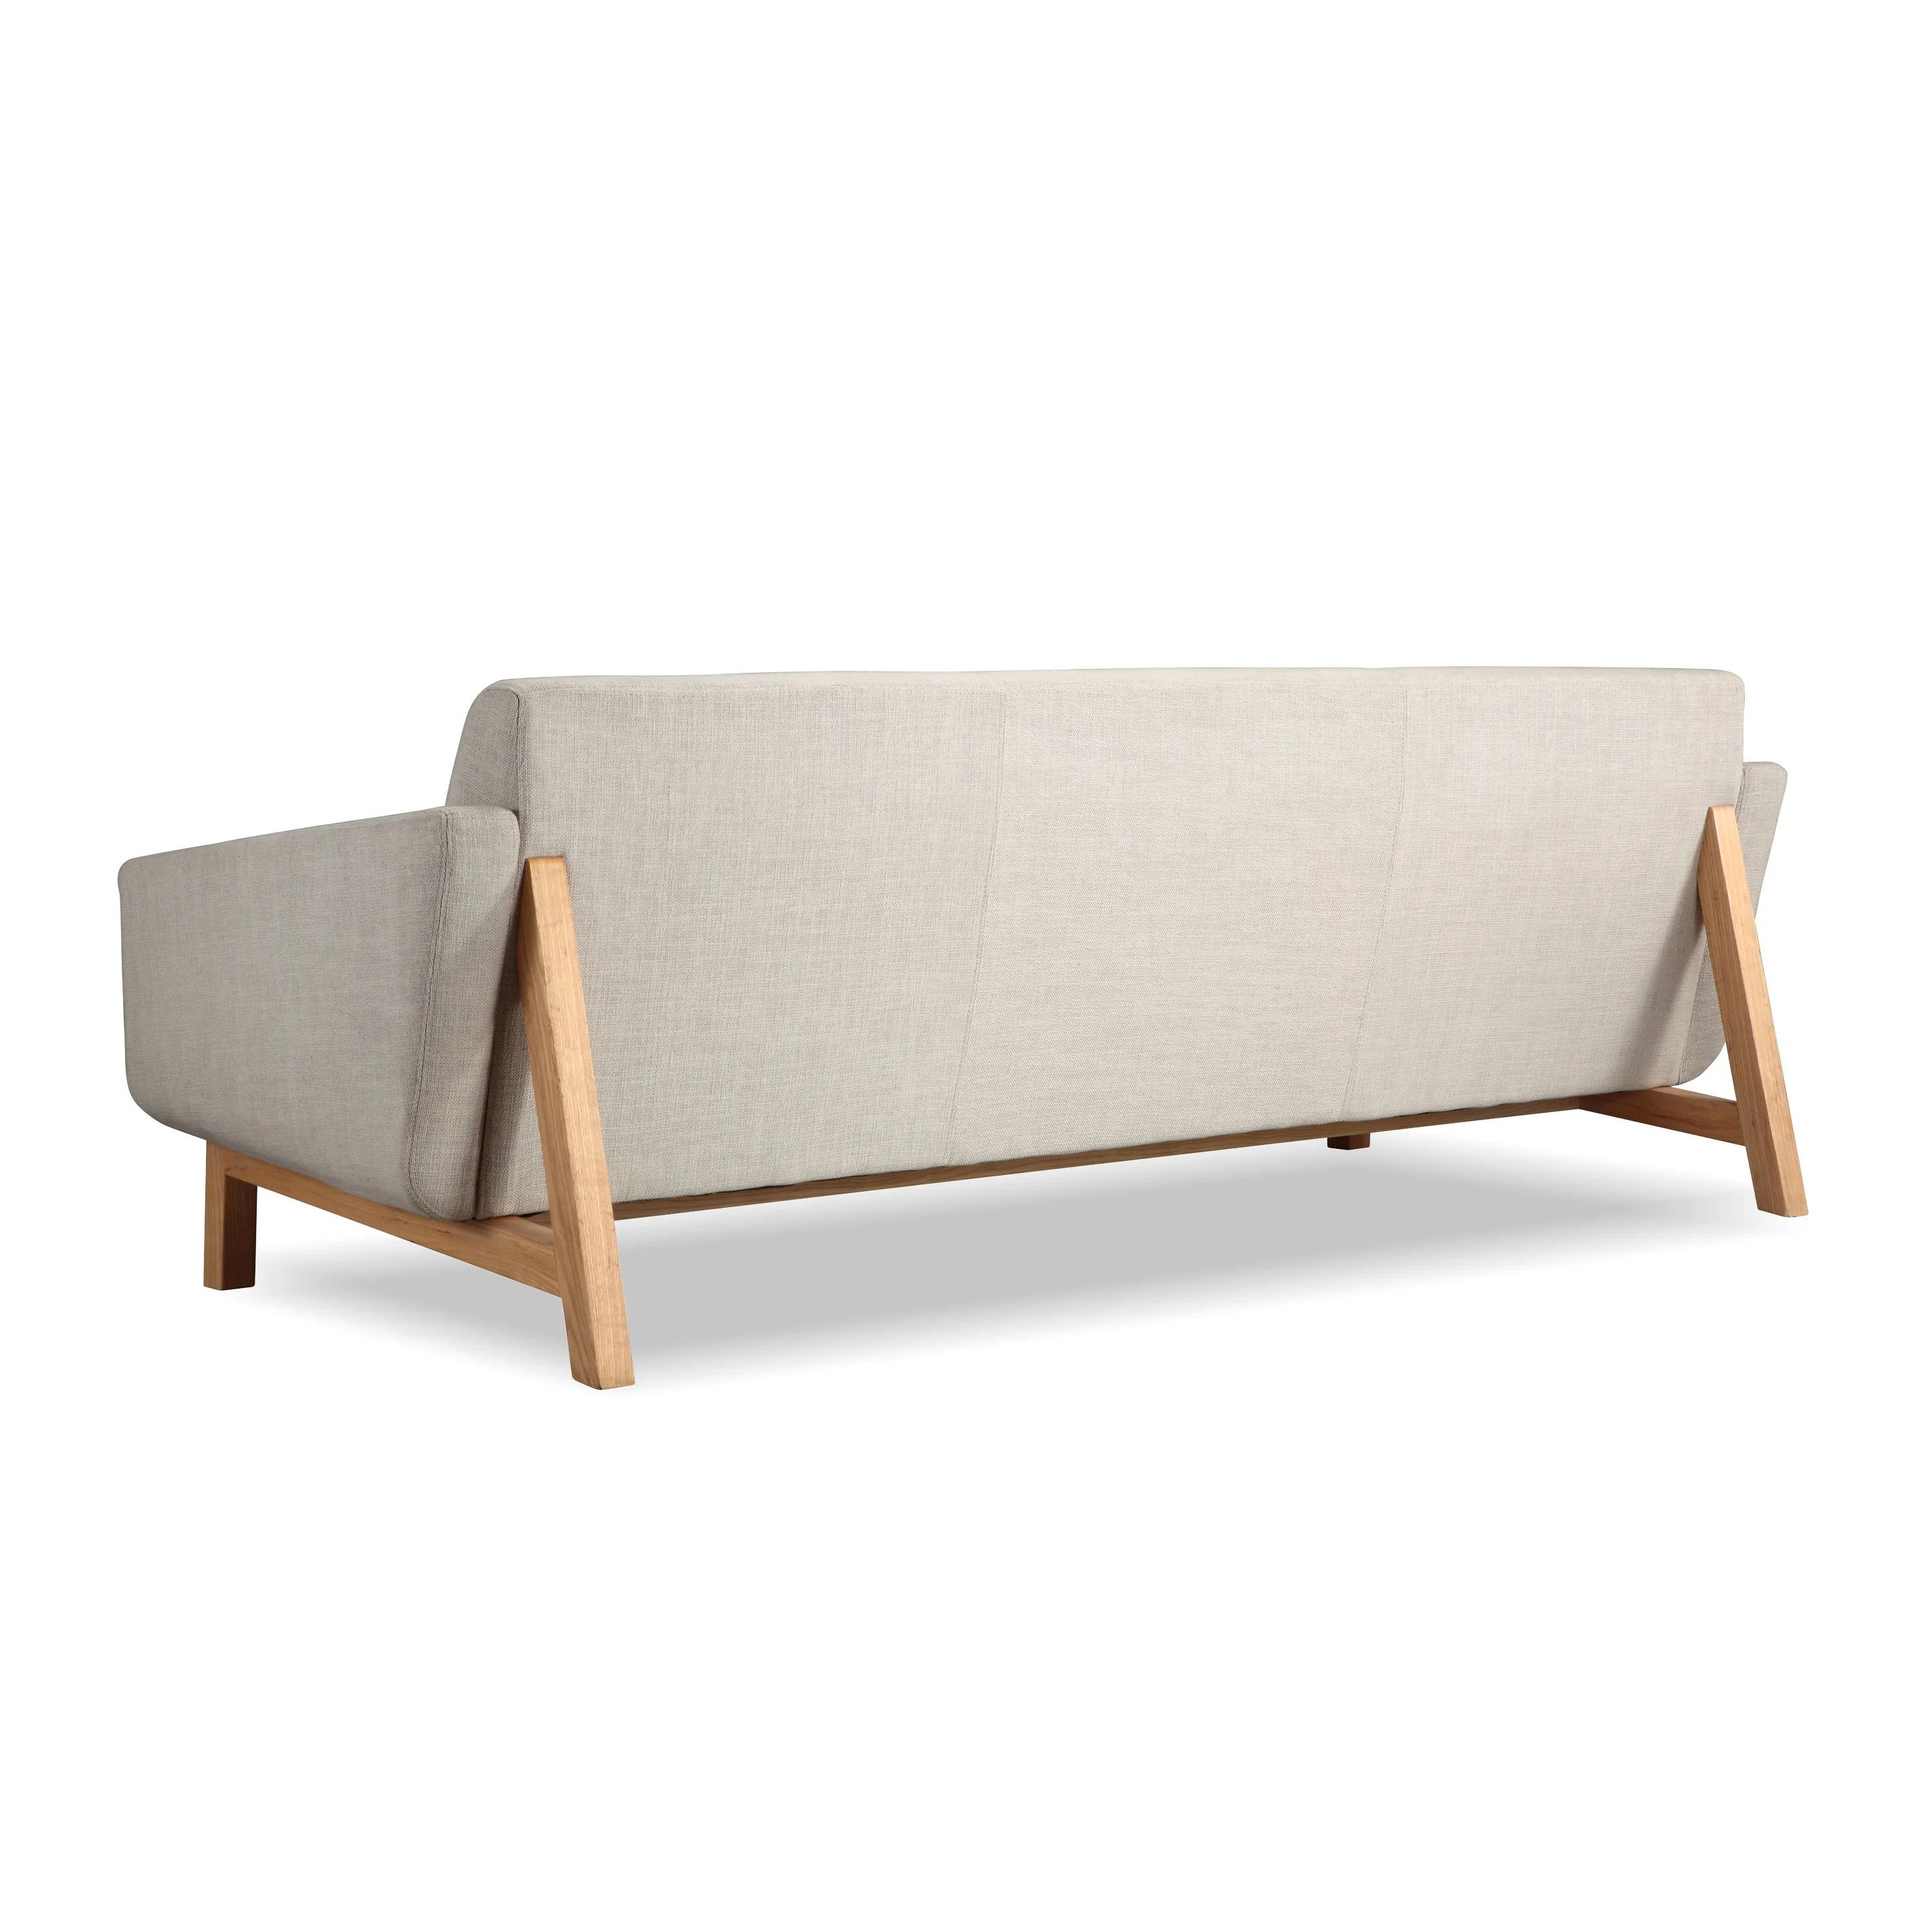 platform sofa ashley and loveseat kardiel mid century modern classic reviews